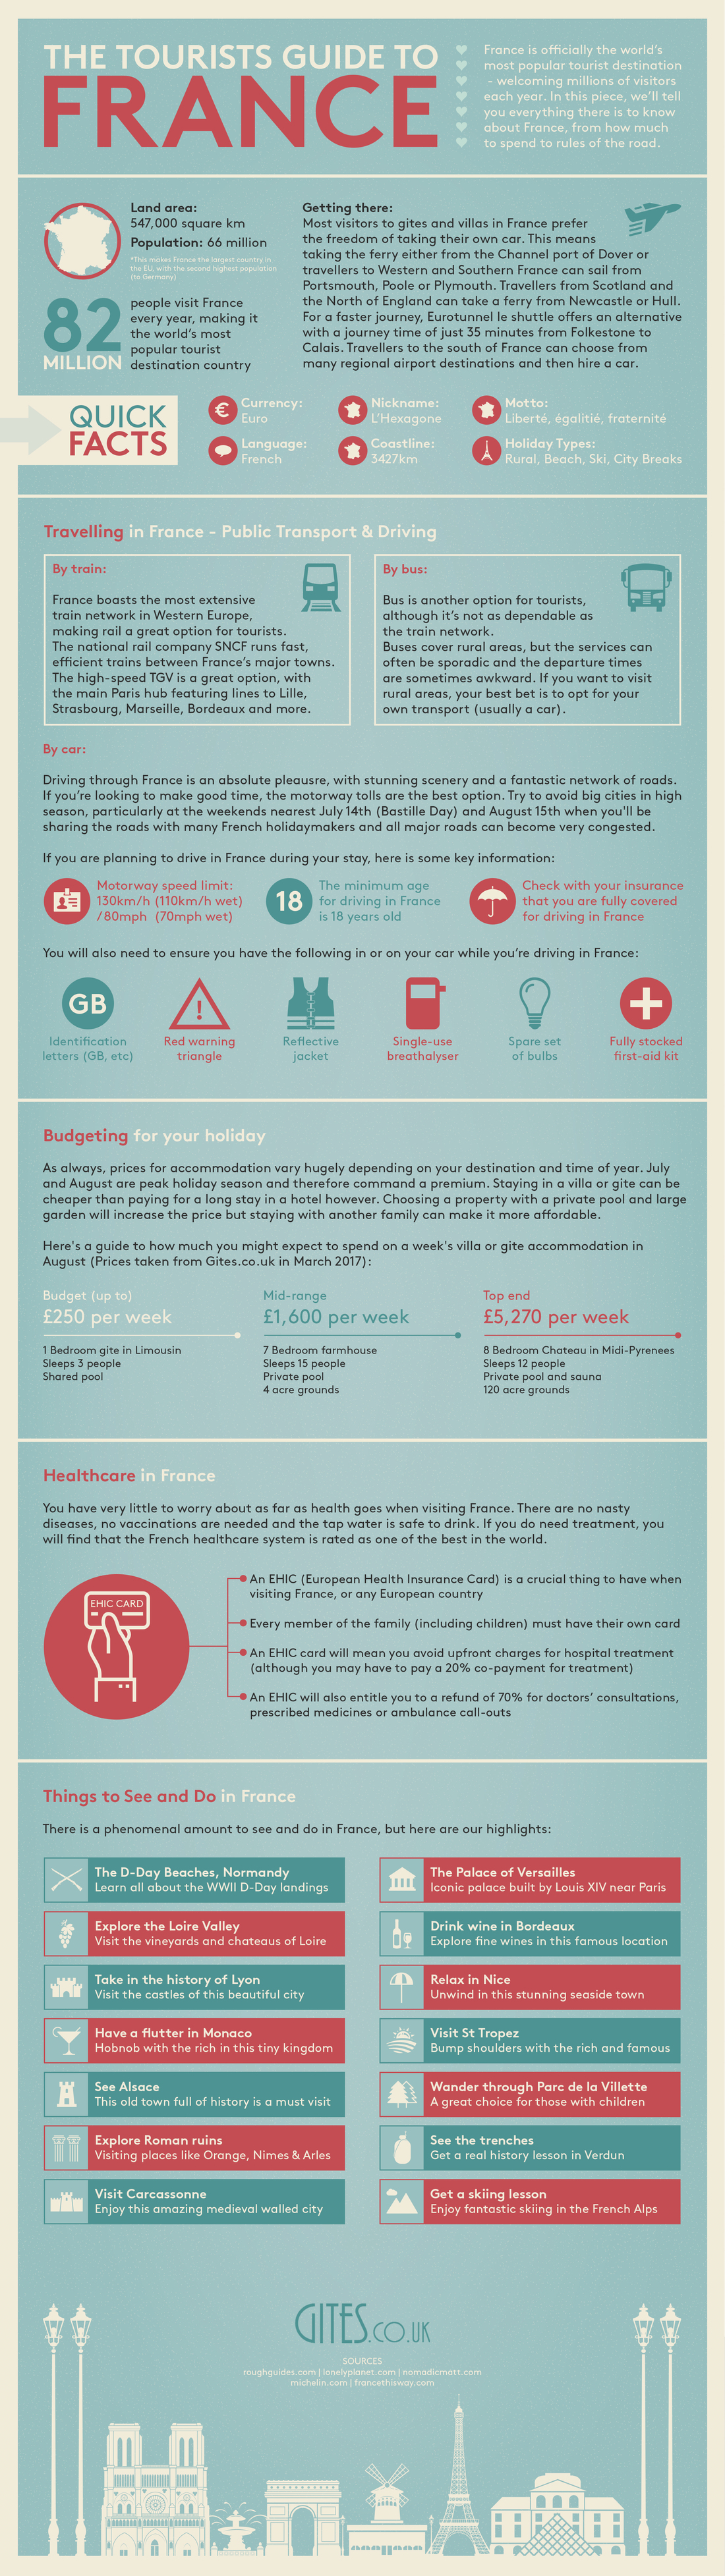 What You Should Do When In France - Infographic